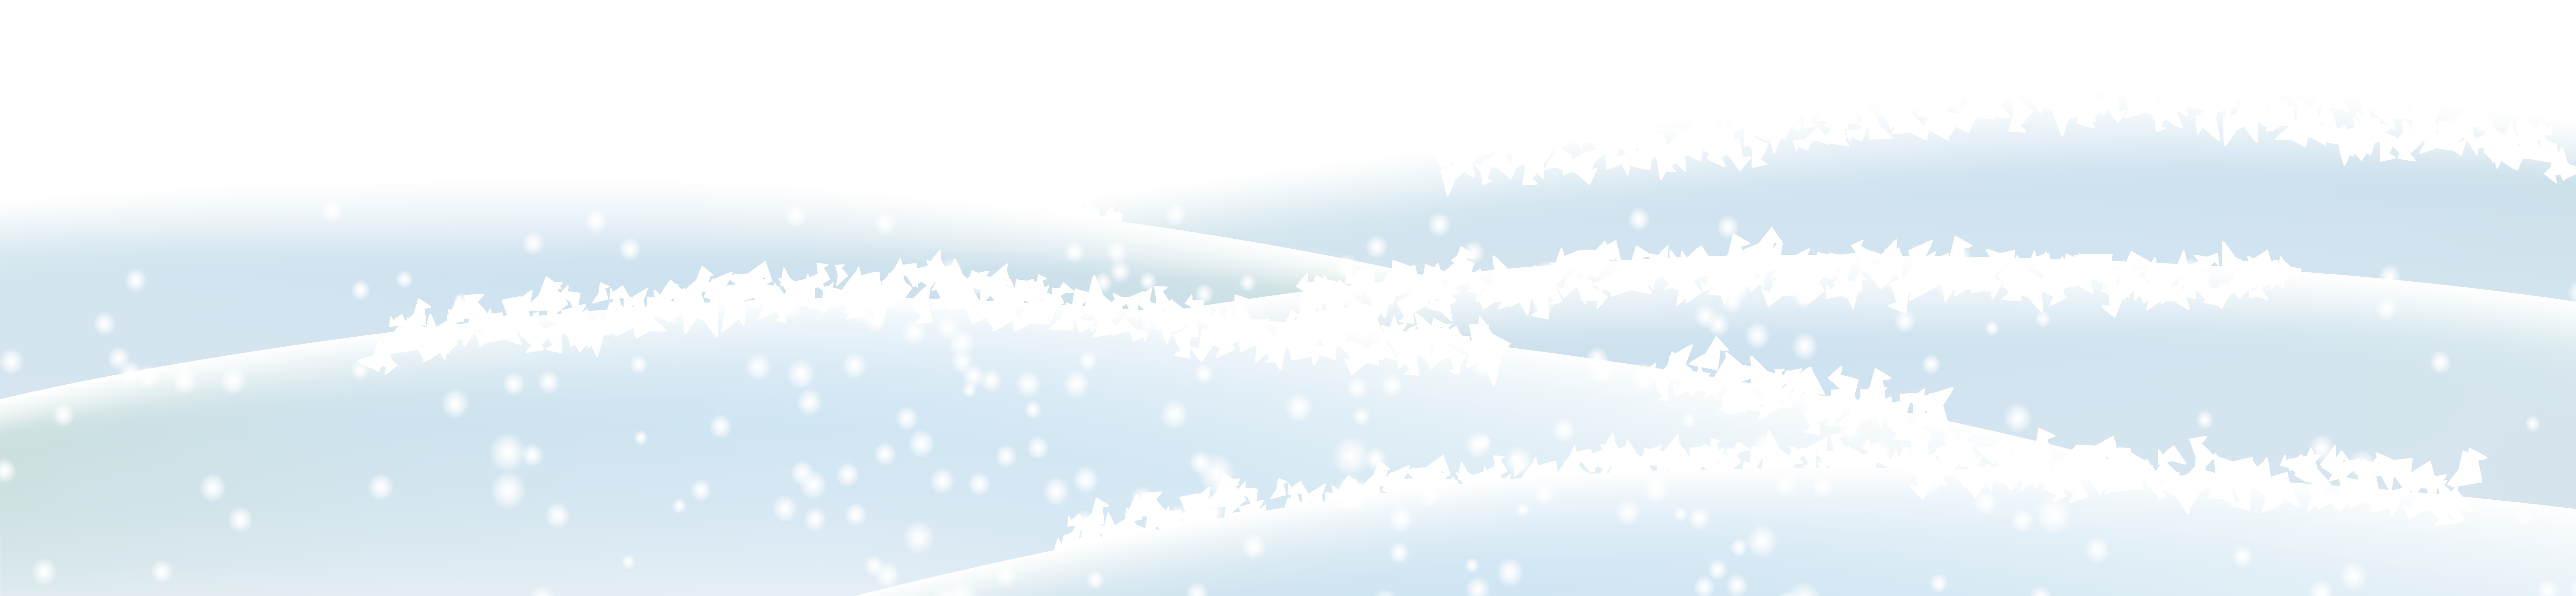 Winter Snow Ground Clip Art Image Gallery Yopriceville High Quality Images And Transparent Png Free Clipart Art Images Clip Art Image